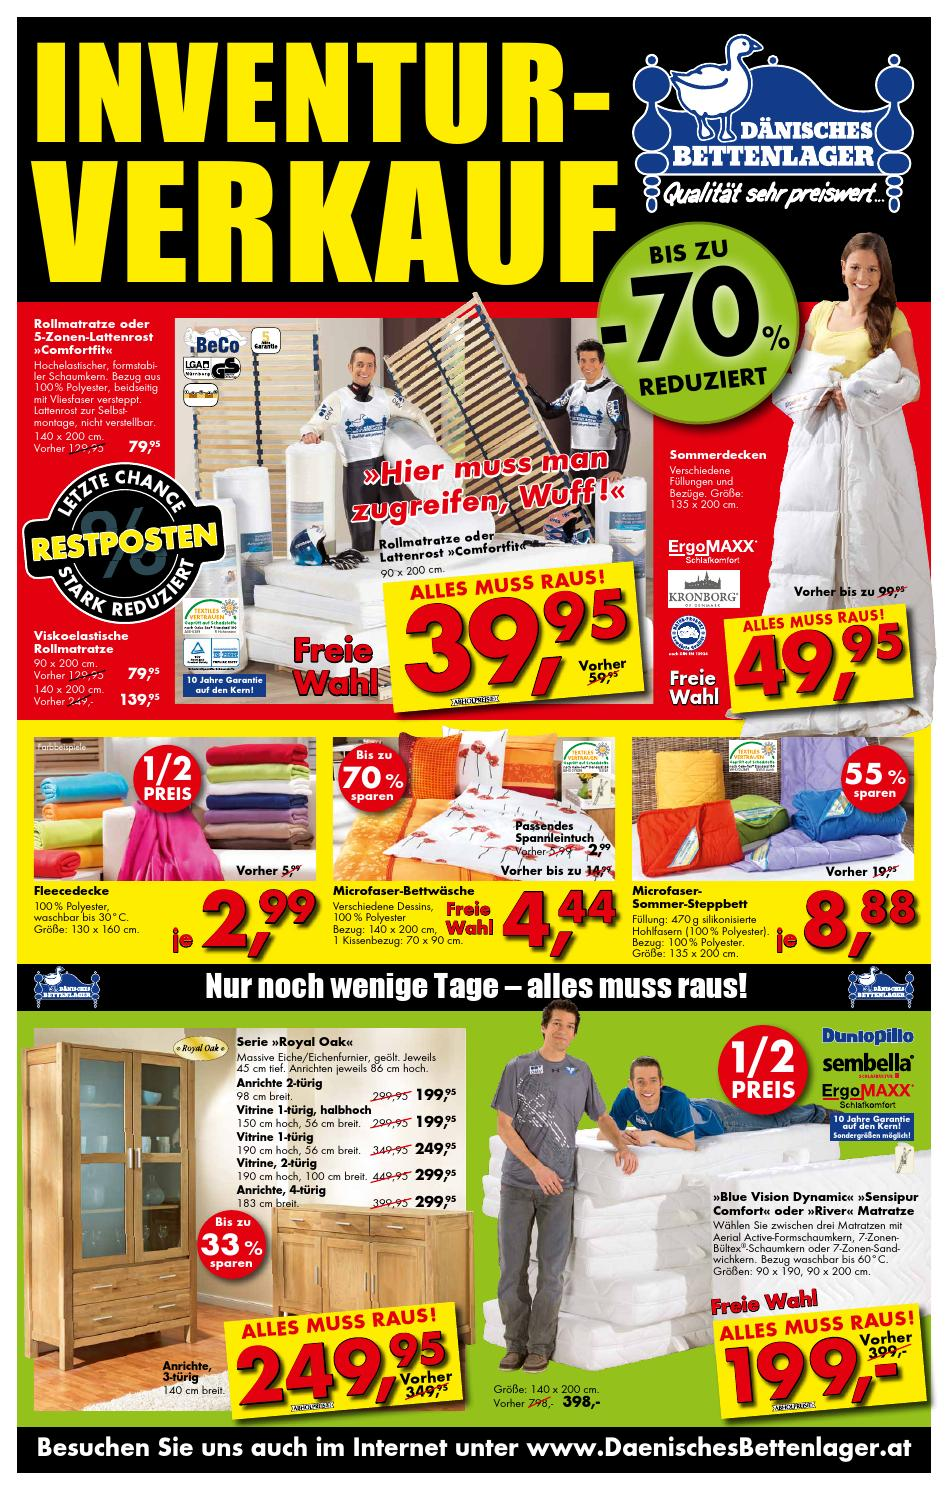 d nisches bettenlager katalog g ltig bis 25 08 by broshuri issuu. Black Bedroom Furniture Sets. Home Design Ideas